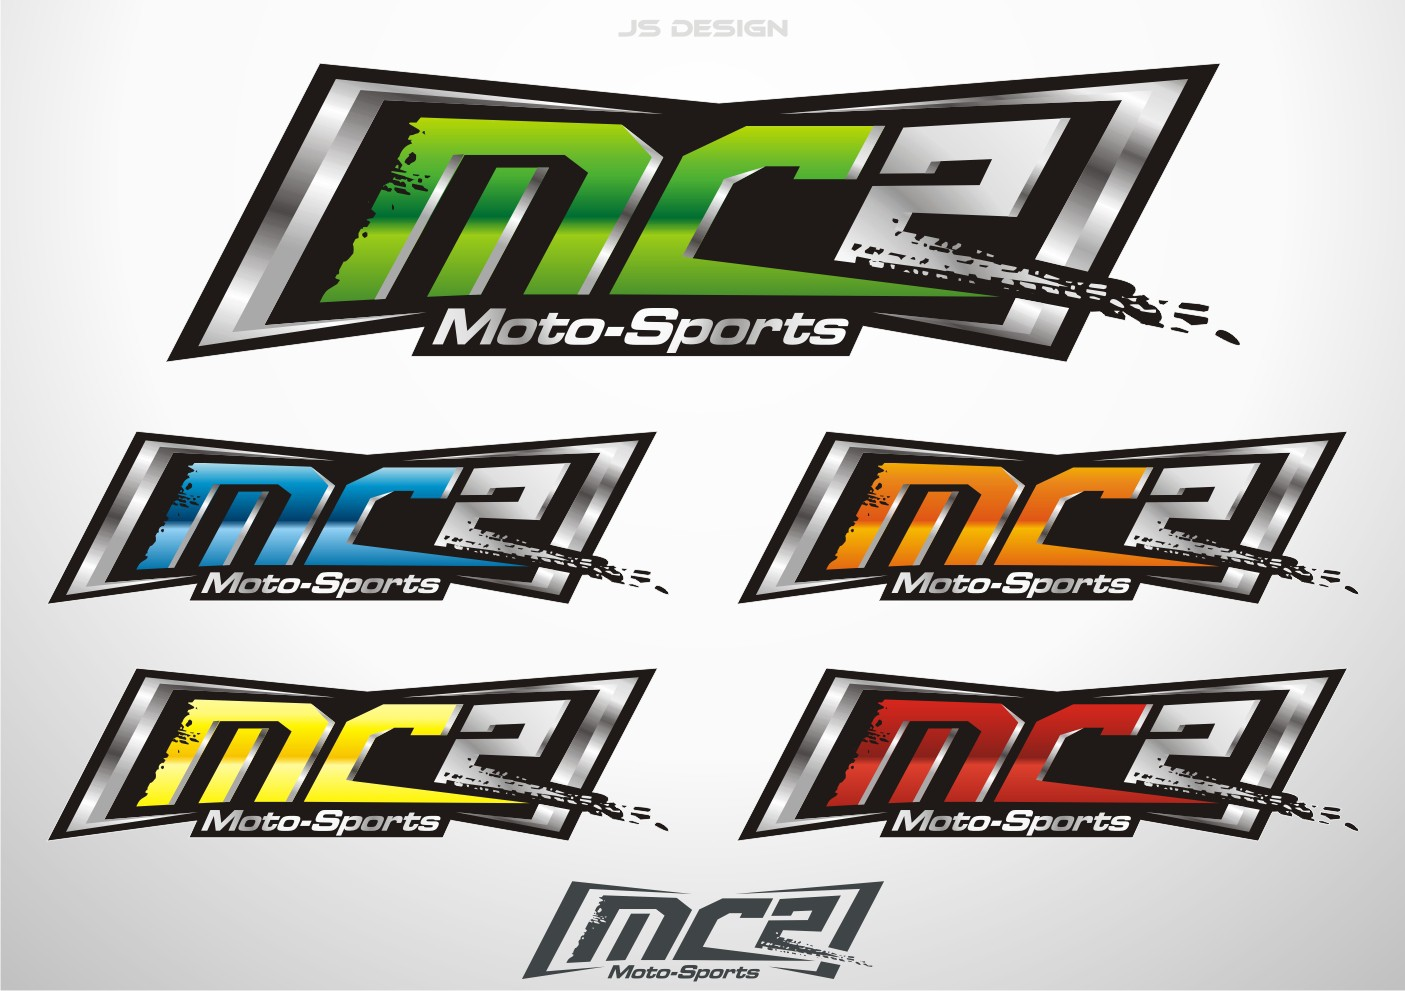 New Cutting Edge logo wanted for MC2 Moto-Sports